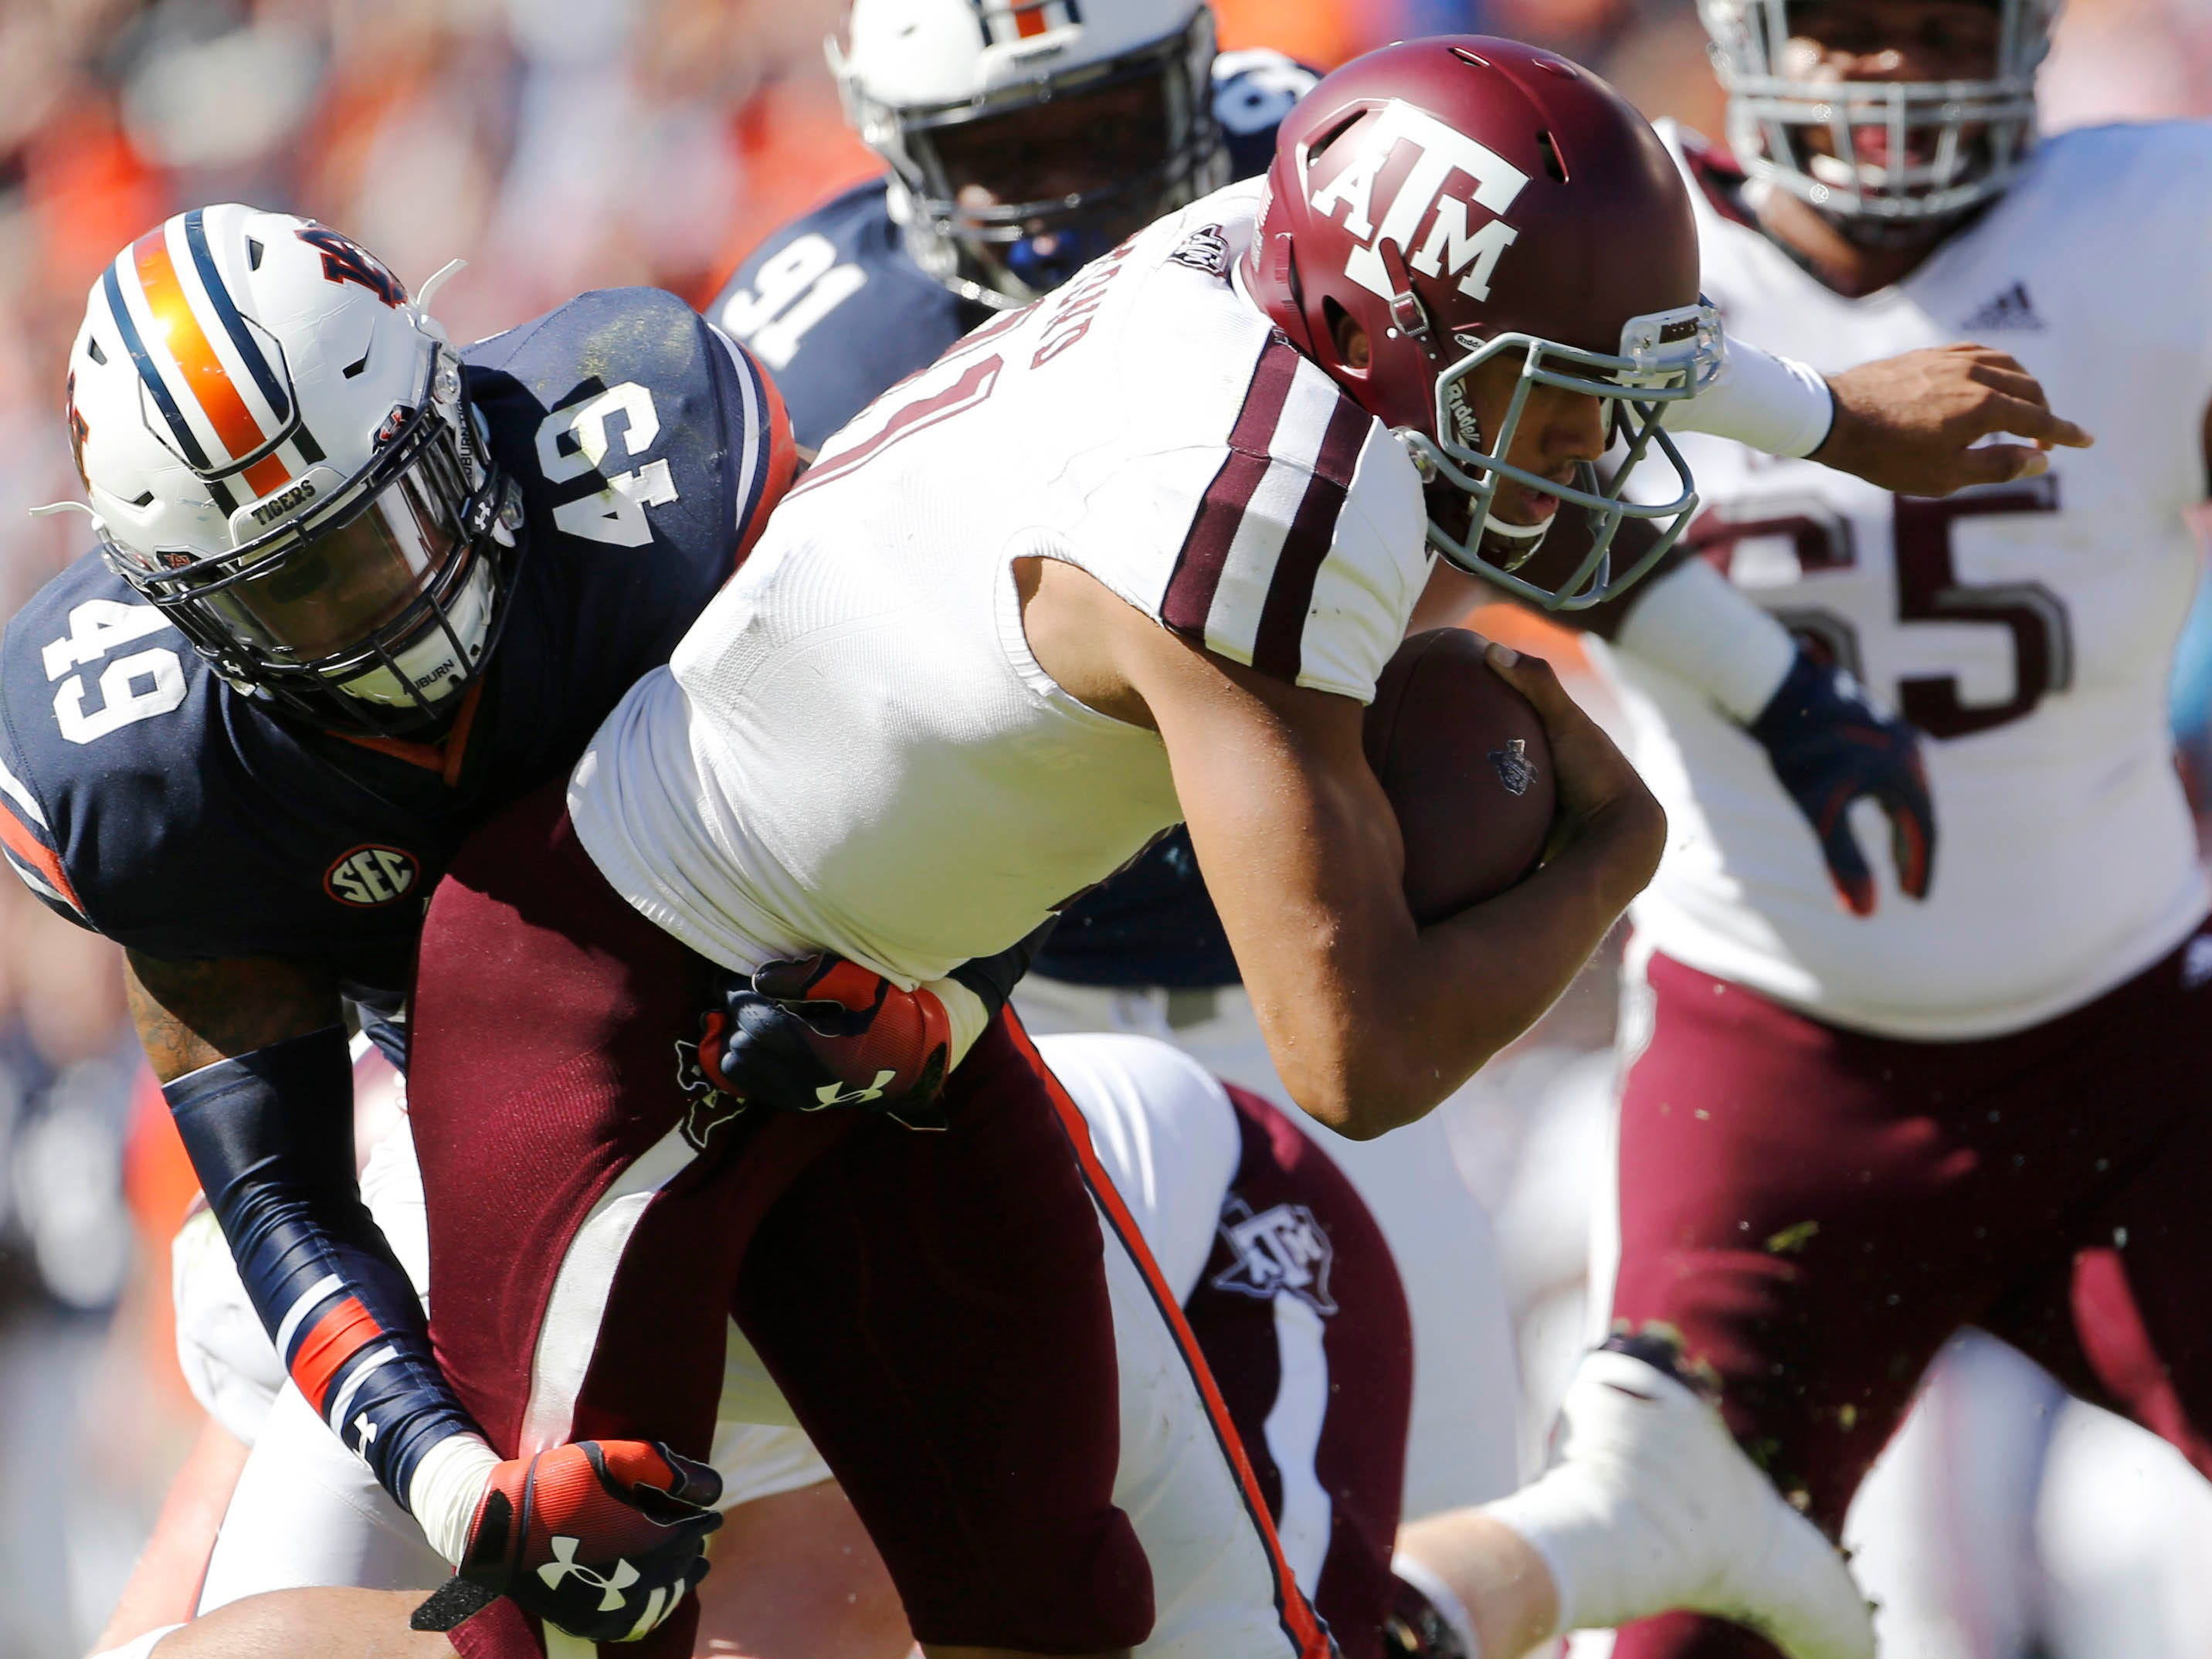 Auburn Tigers linebacker Darrell Williams (49) brings down Texas A&M Aggies quarterback Kellen Mond during the first quarter at Jordan-Hare Stadium.